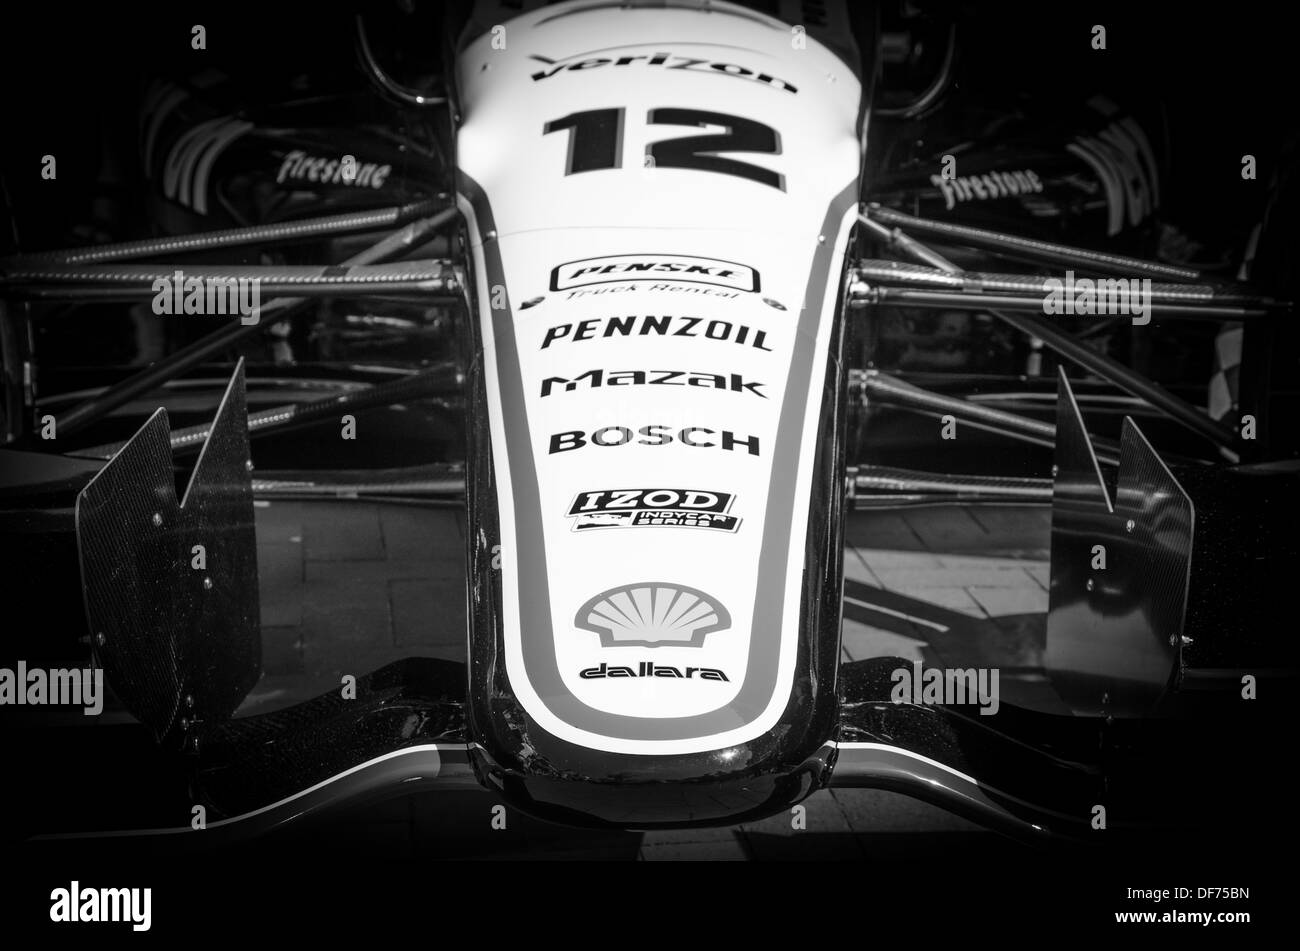 Indy Car at the Baltimore Grand Prix - Stock Image